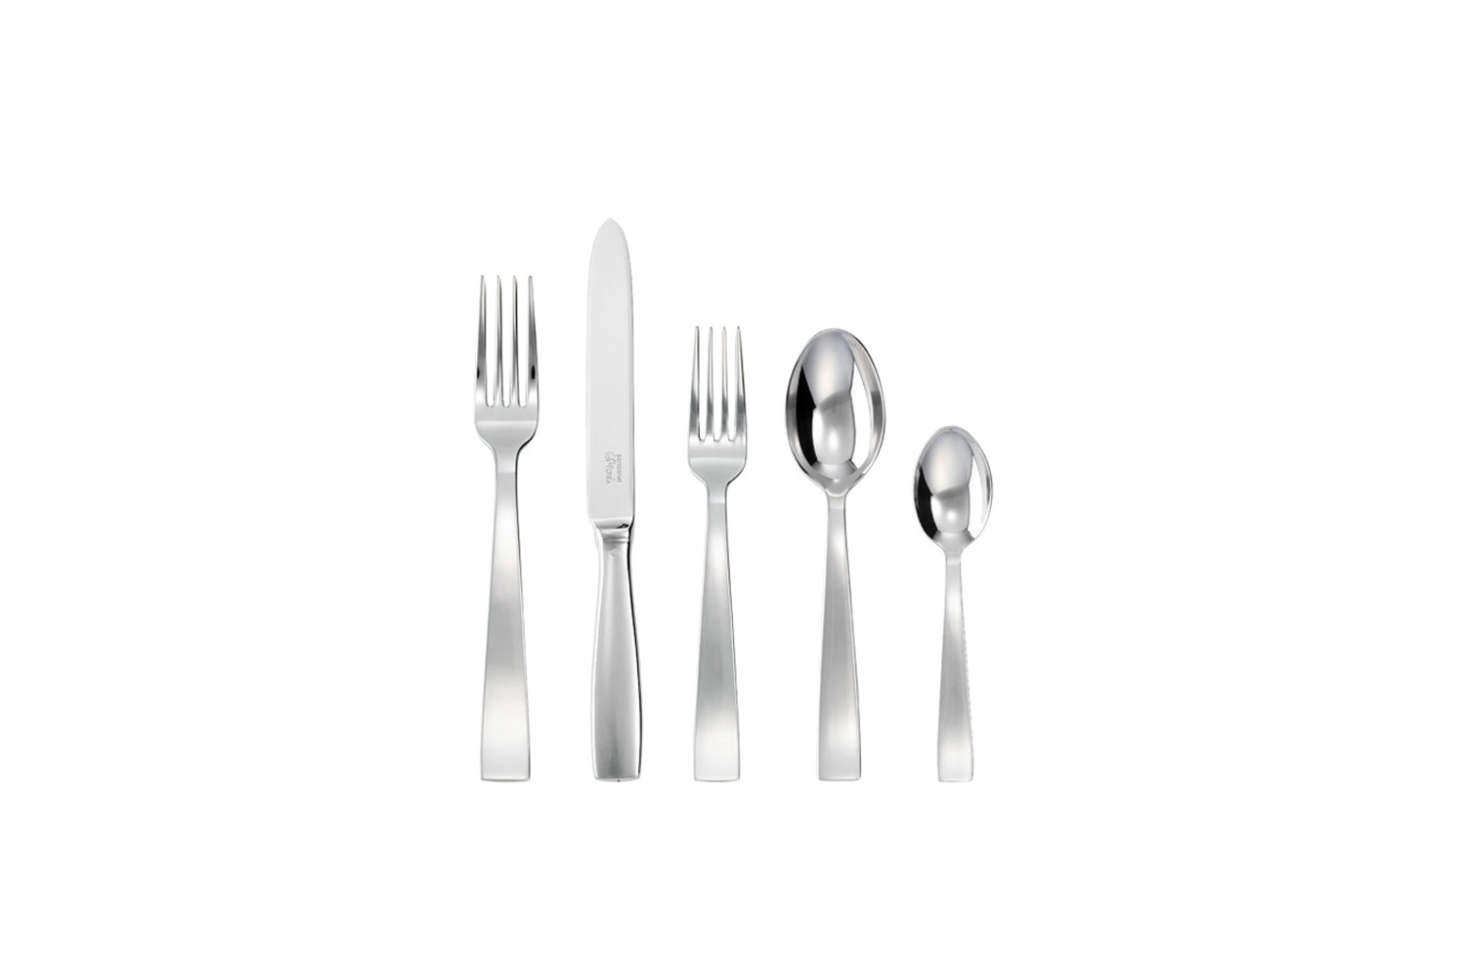 TheSambonet Silver Plated 5-Piece Place Settingwas first designed in 3